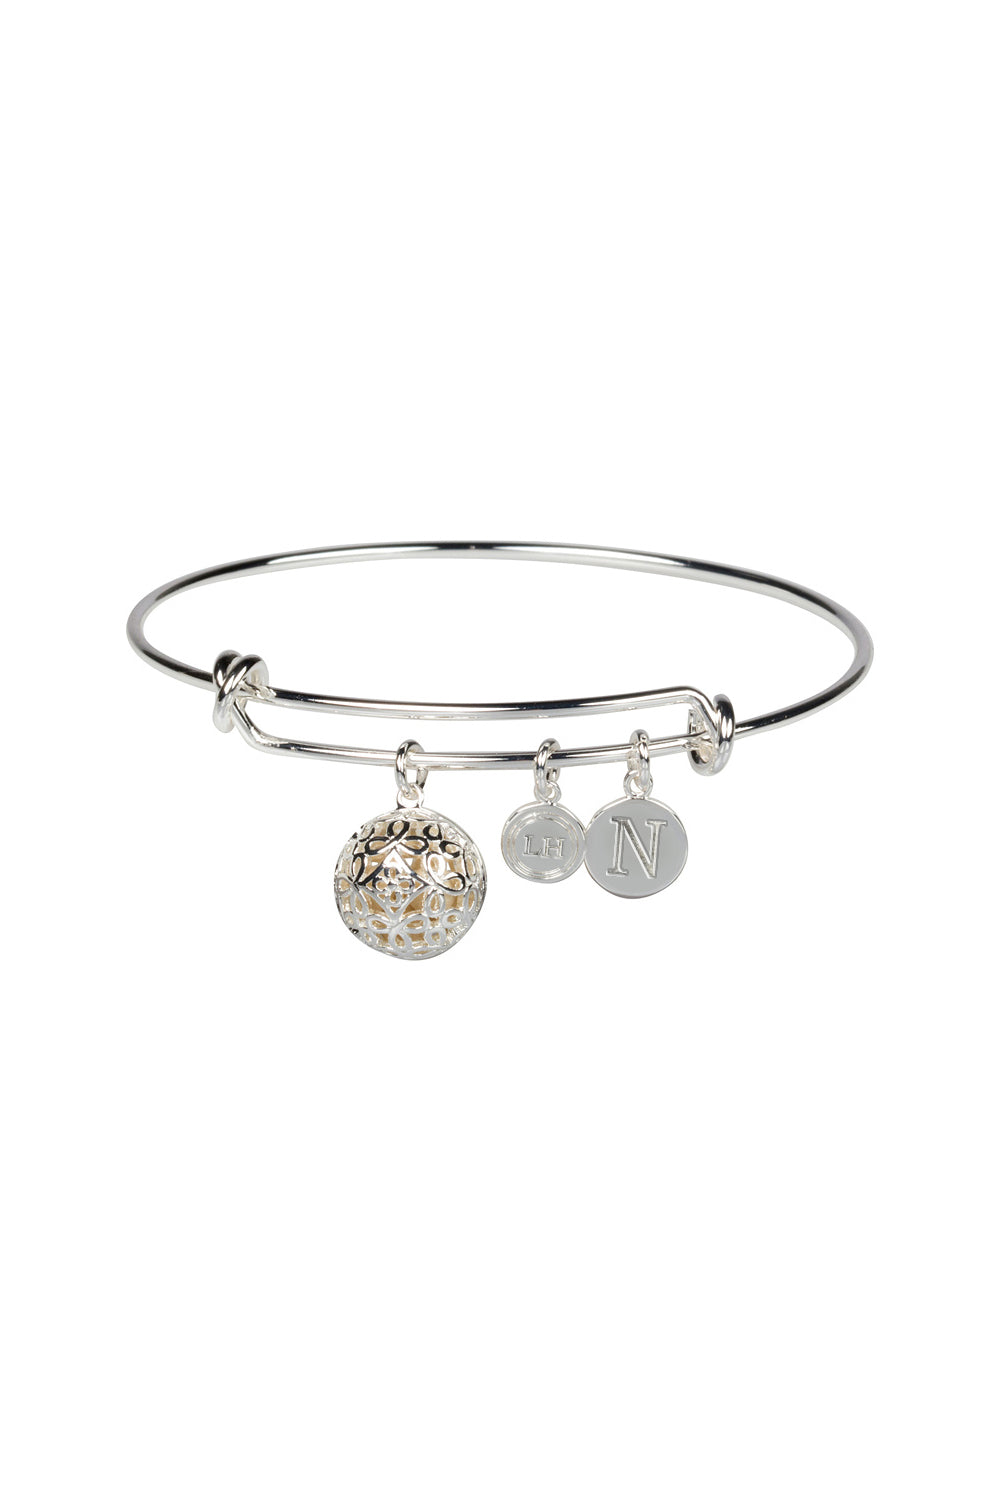 """N"" Initial Fragrance Bangle  with Silver Tone Charm"